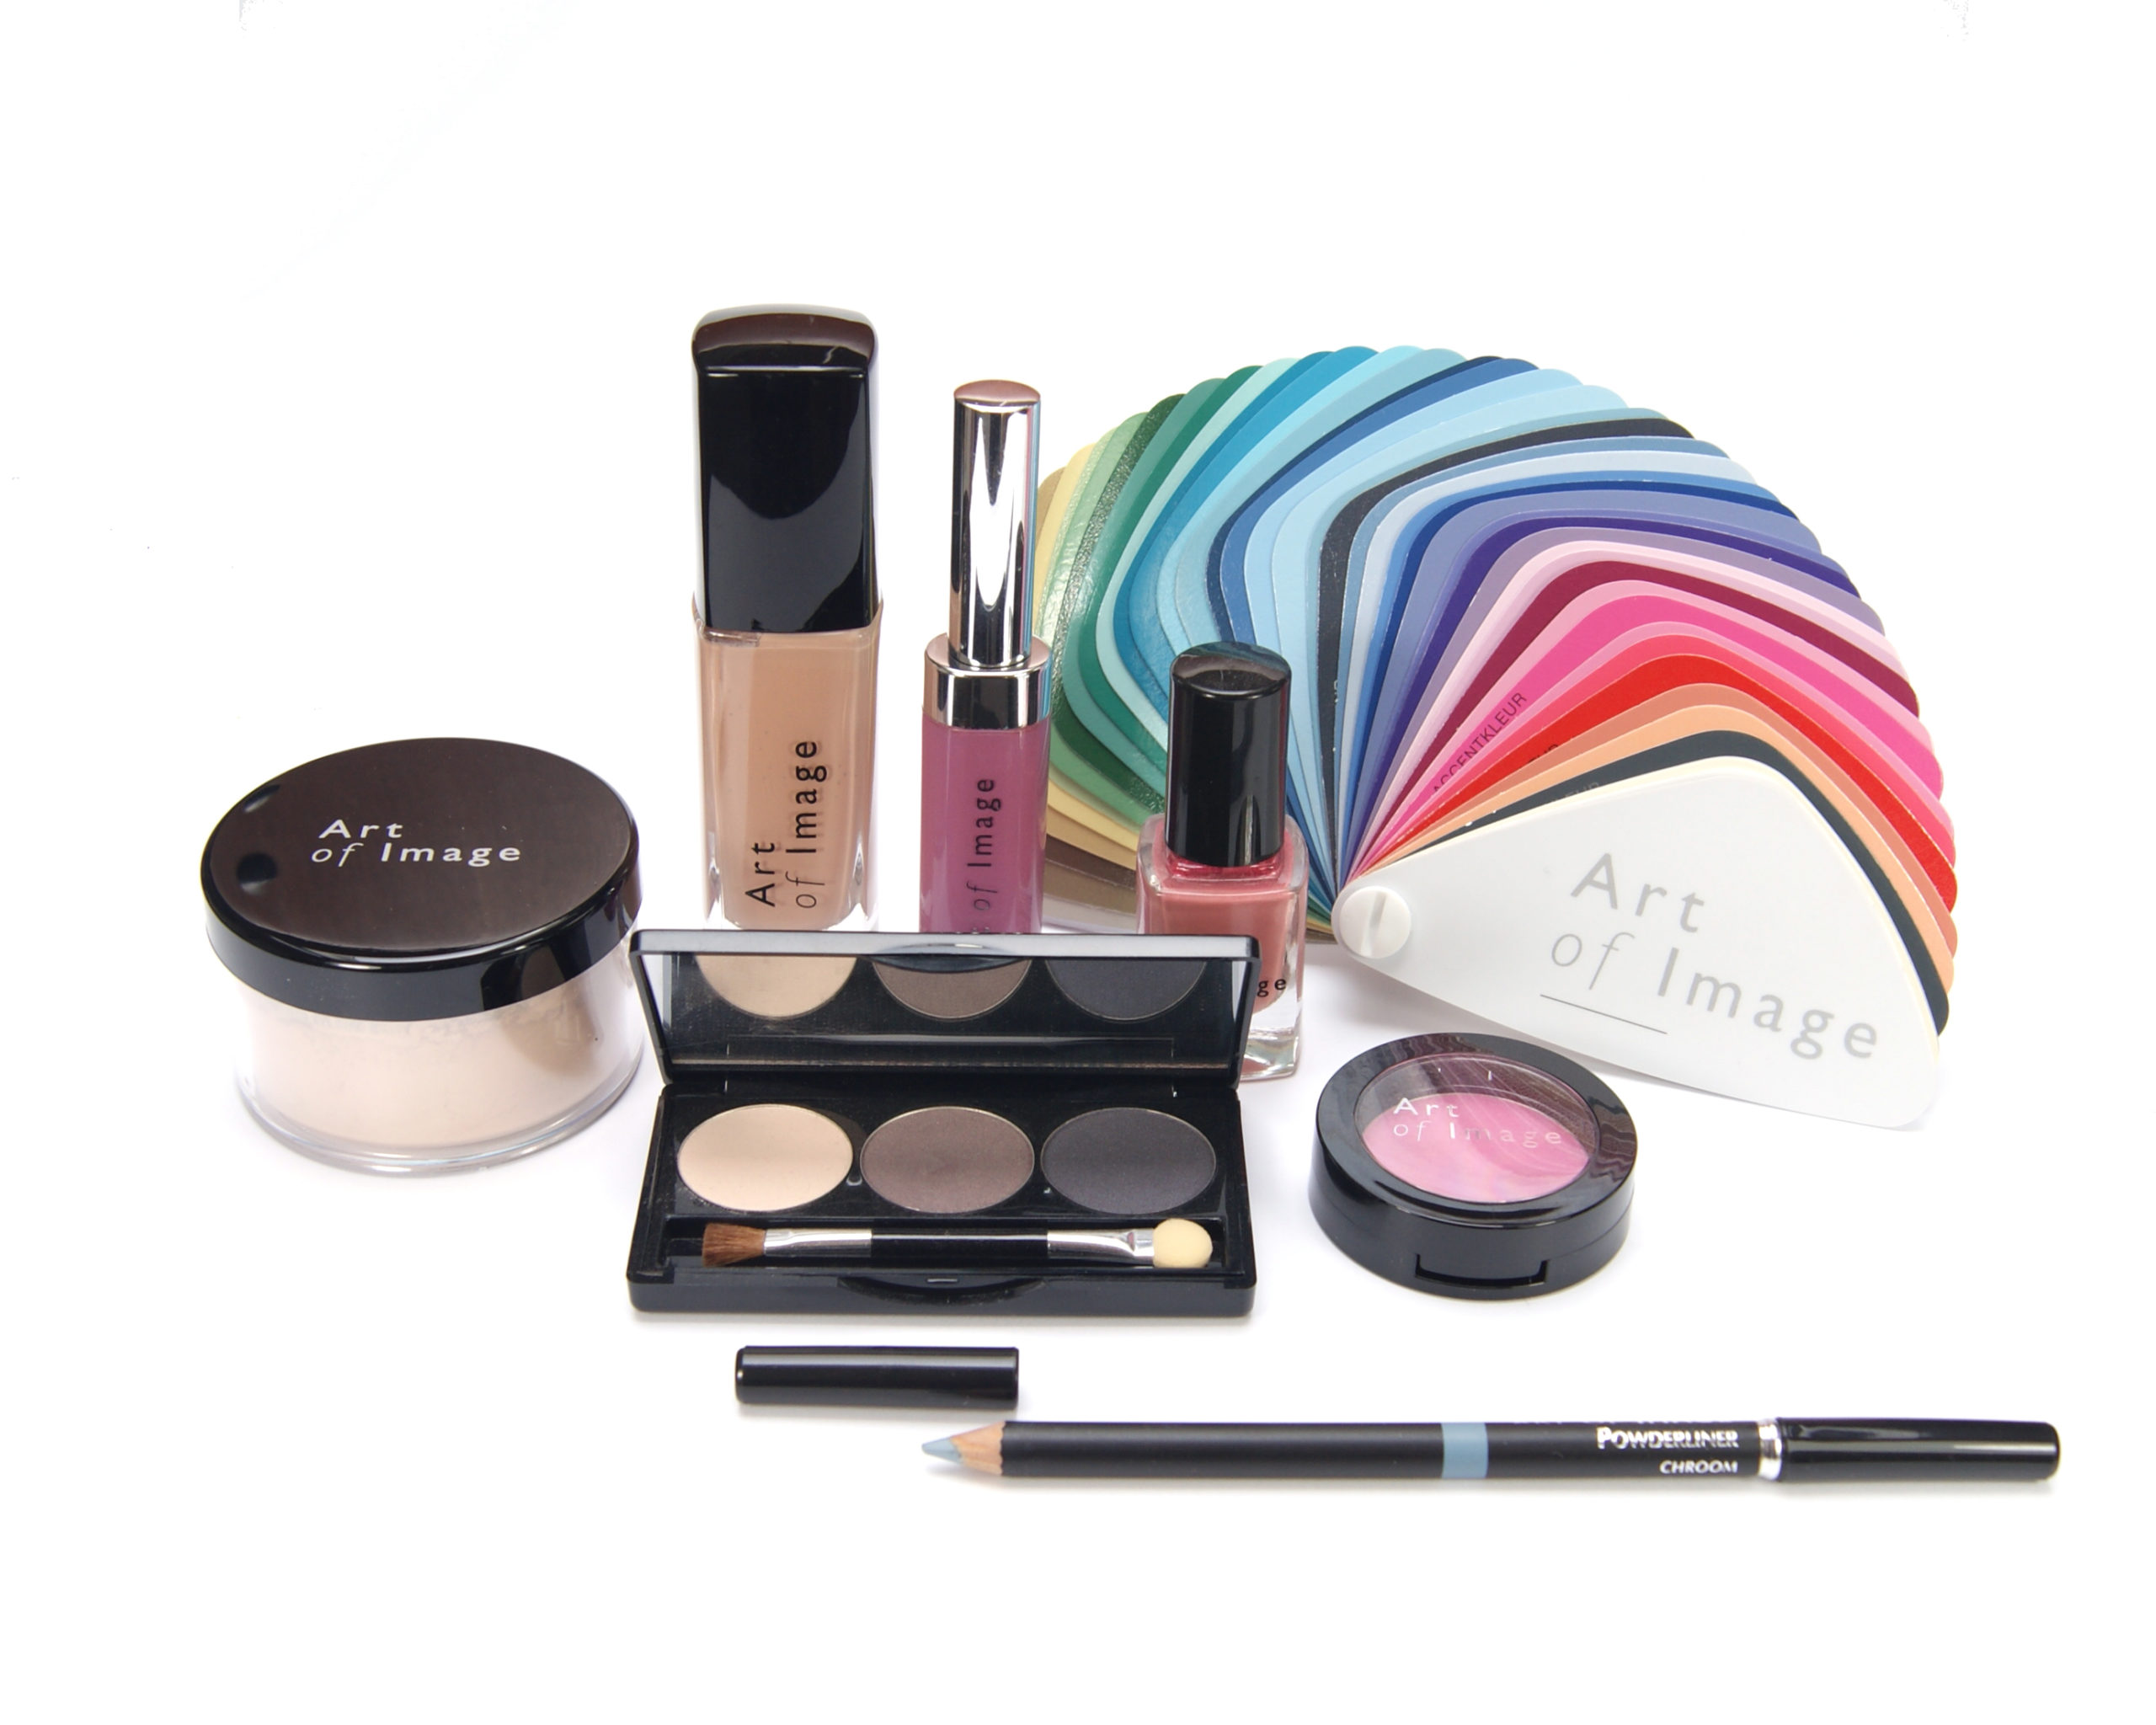 Art of Image Adelheid Imago Kleur stijl make-up make up